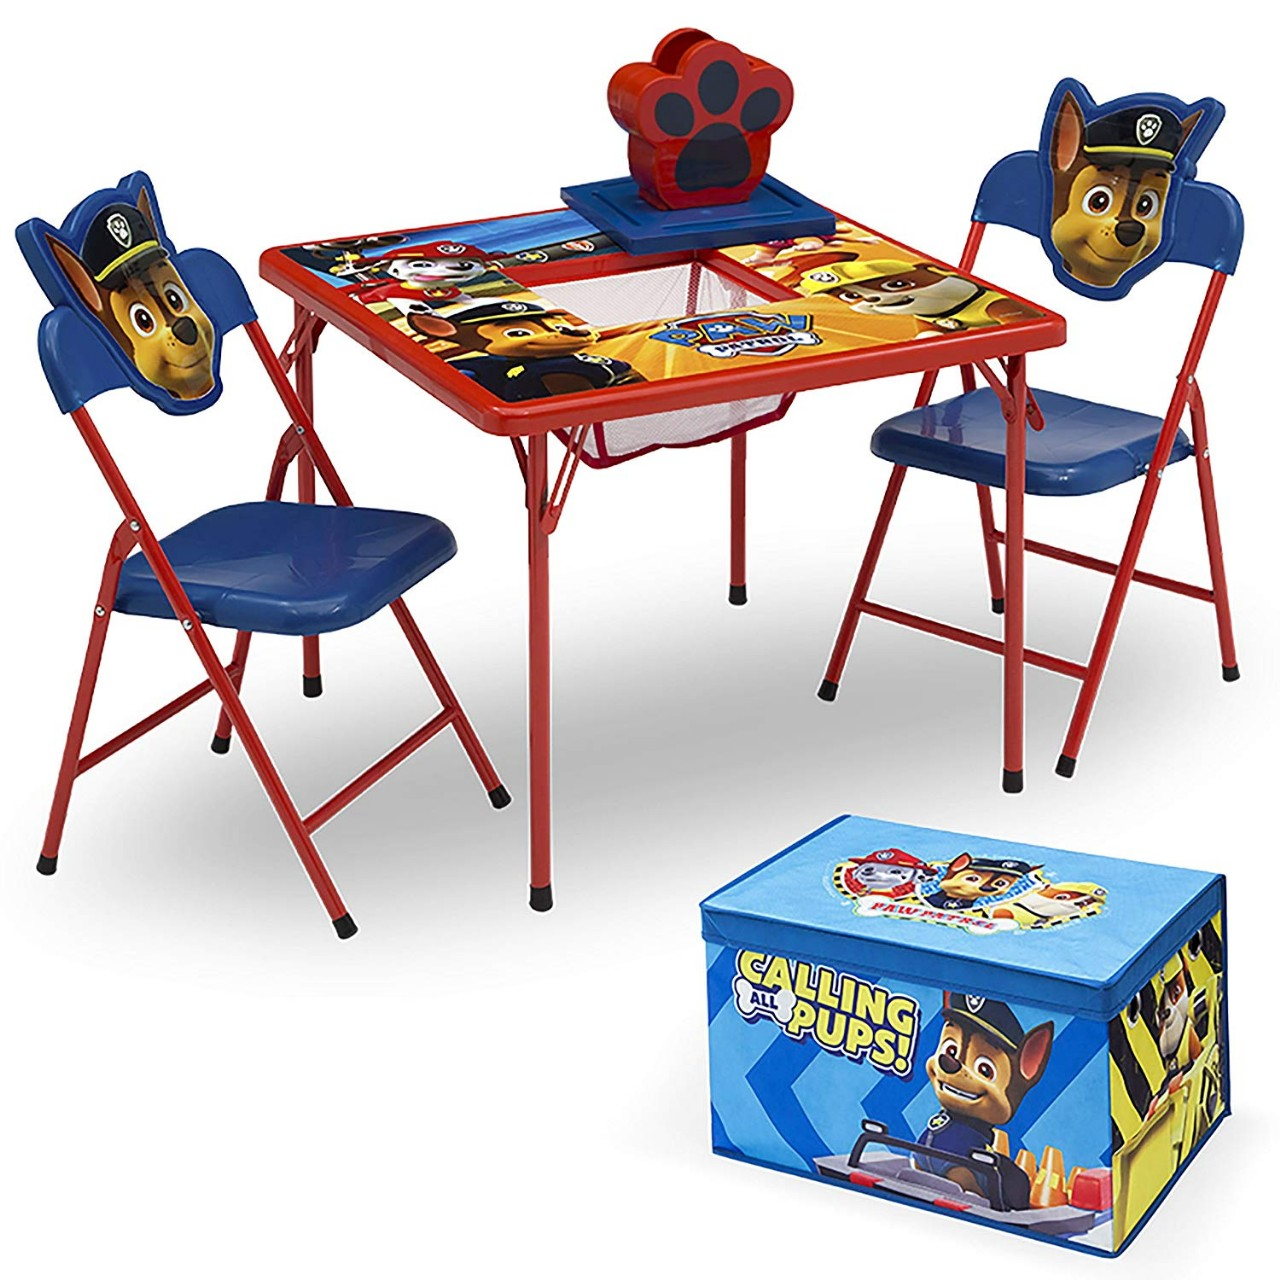 4 Piece Kids Furniture Set 2 Chairs And Table Set